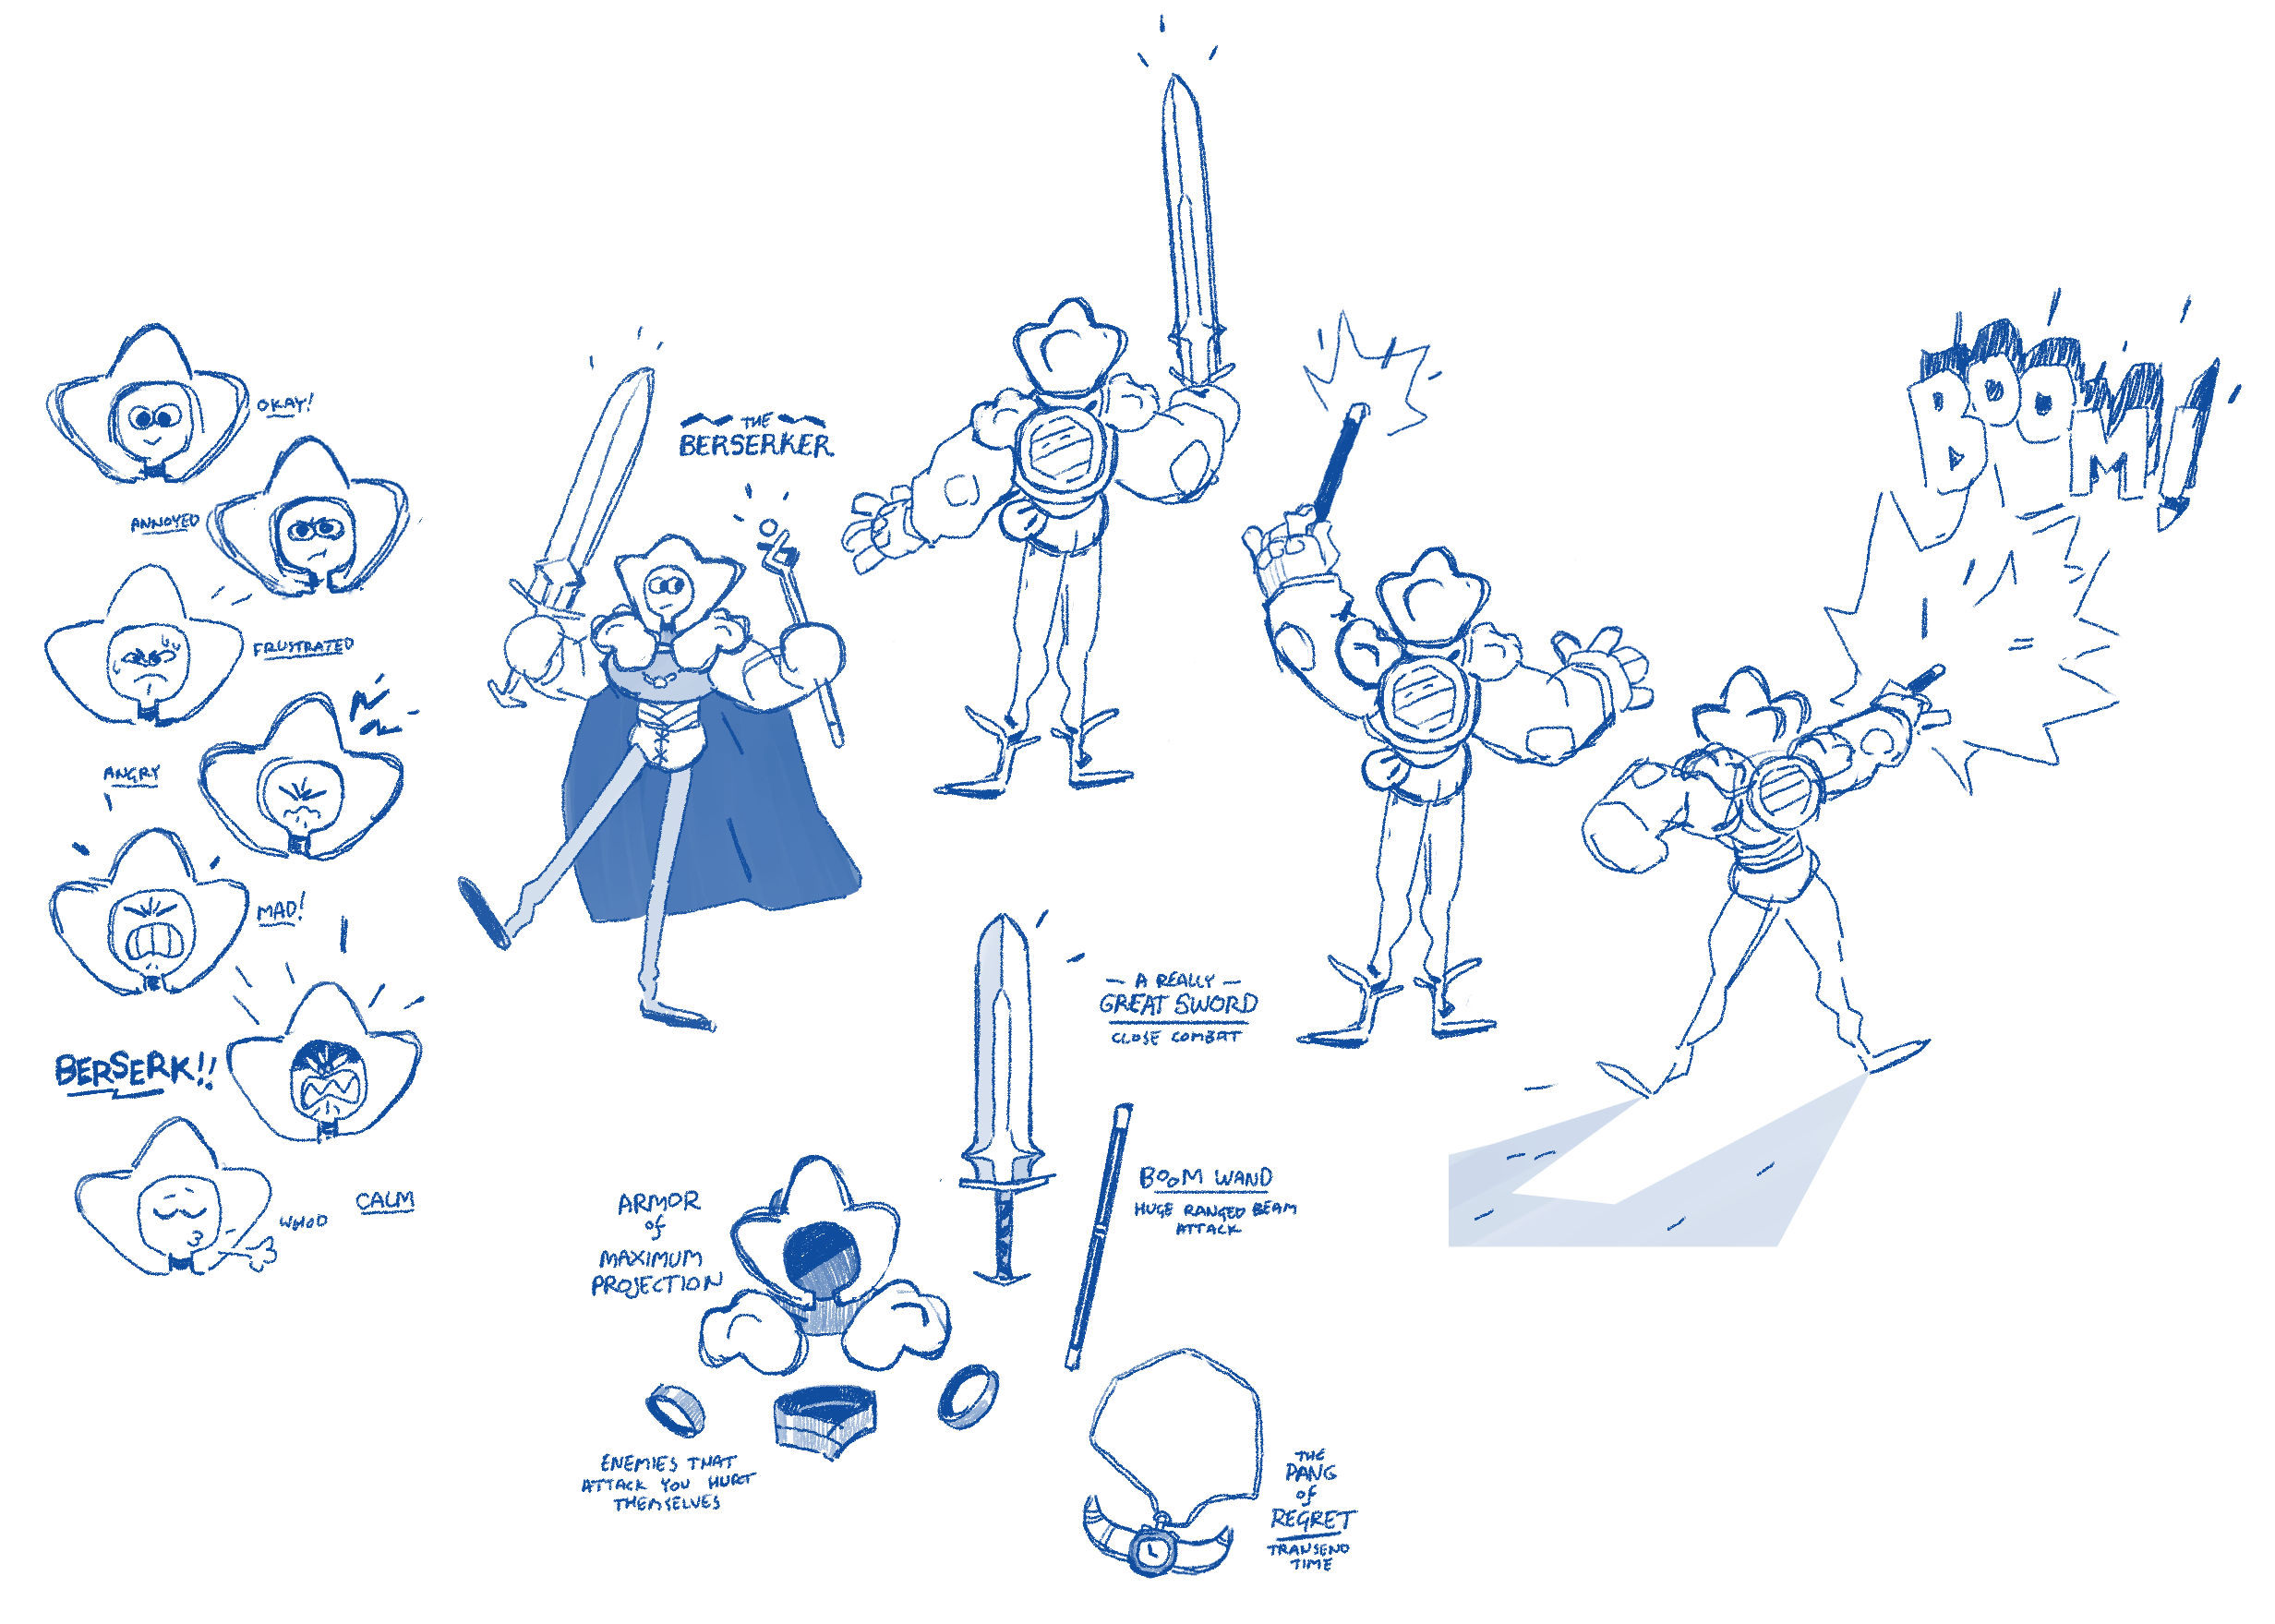 Various concepts for the Berserker and Mood UI.